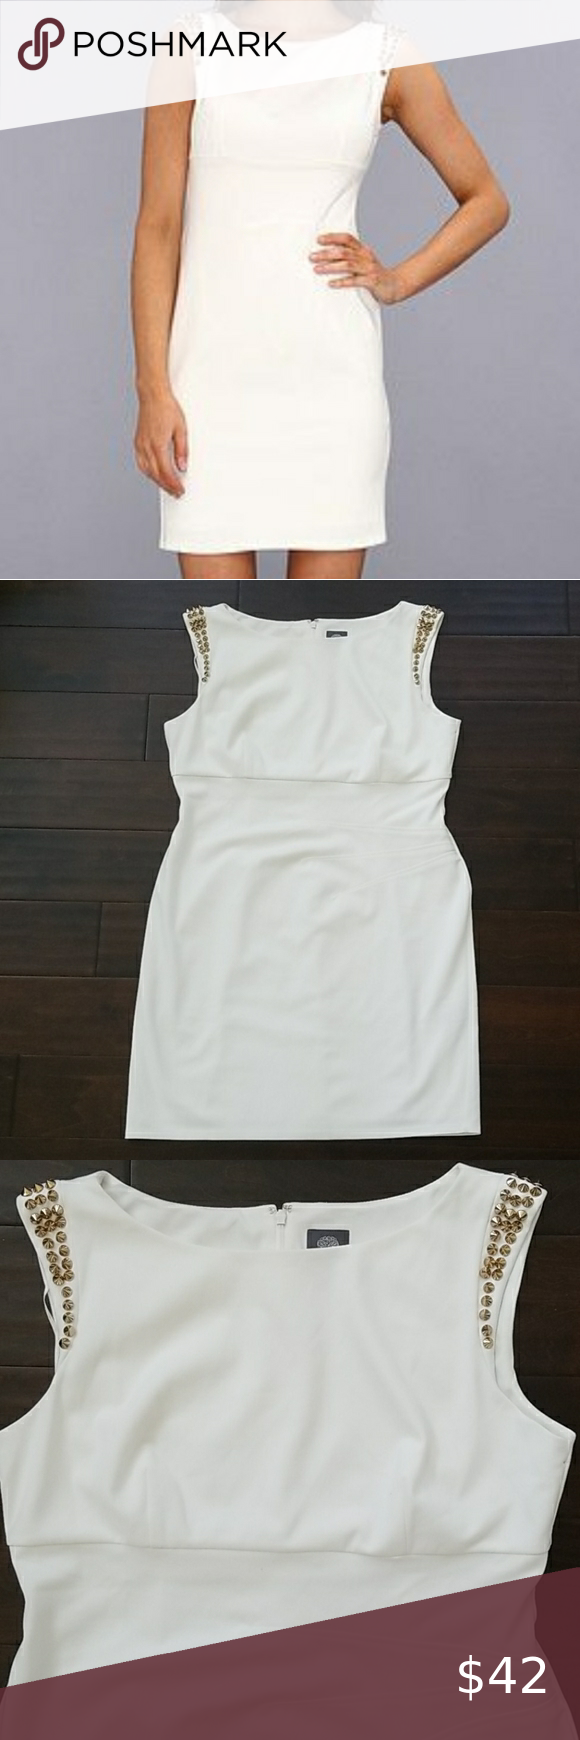 Vince Camuto White Dress With Gold Studs White Dress Clothes Design Dresses [ 1740 x 580 Pixel ]